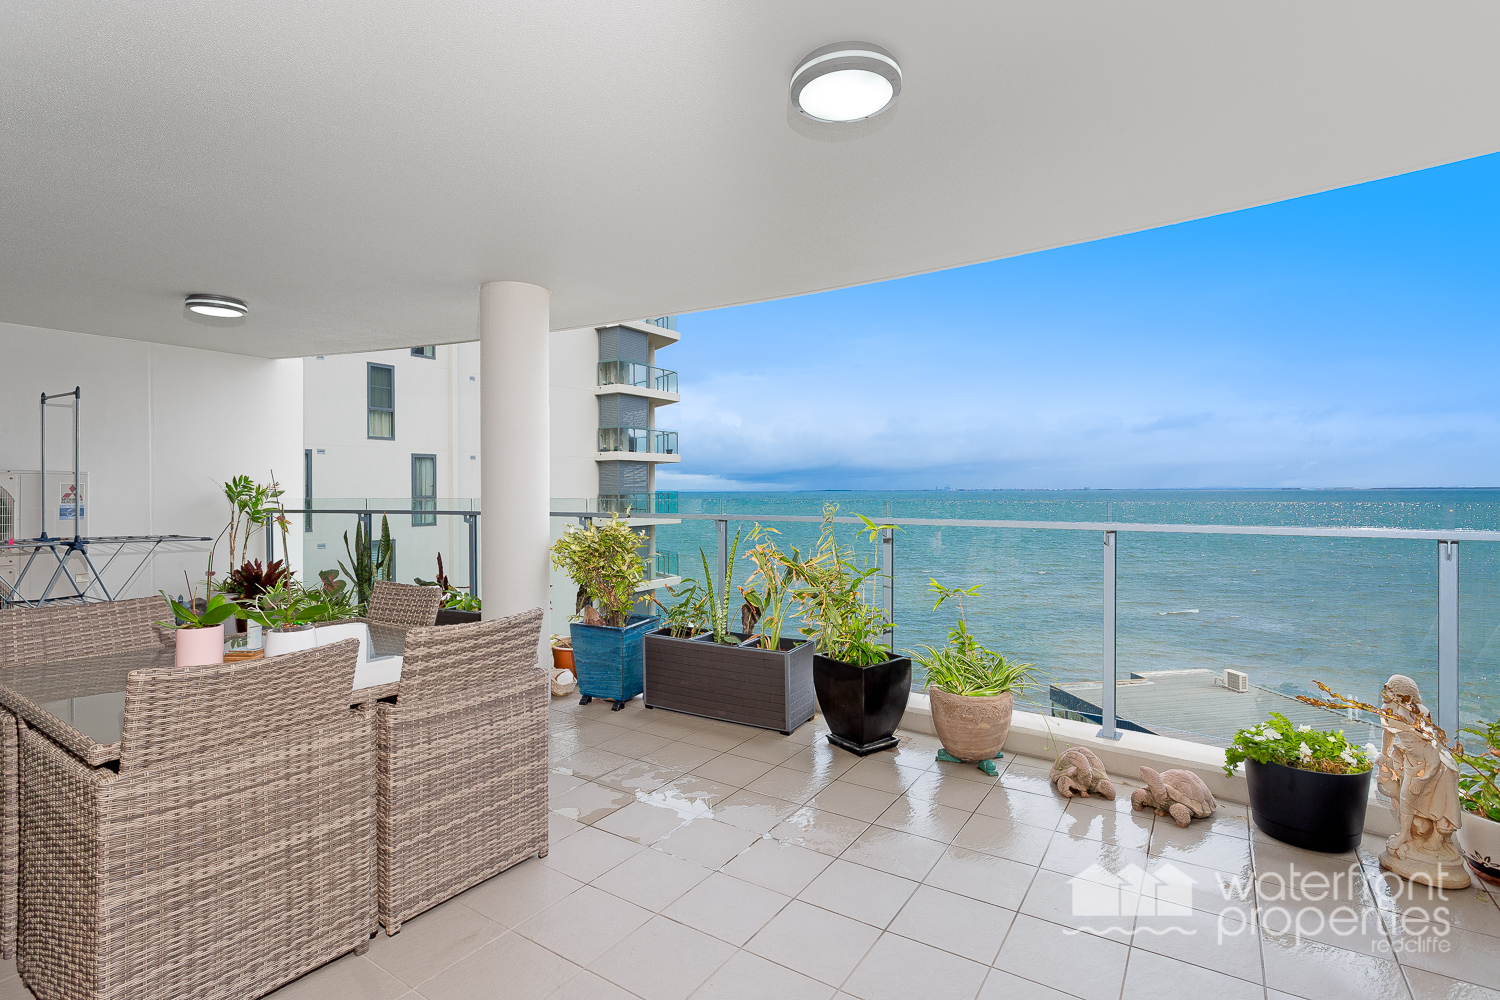 52/36 WOODCLIFFE CRESCENT, WOODY POINT  QLD  4019 2